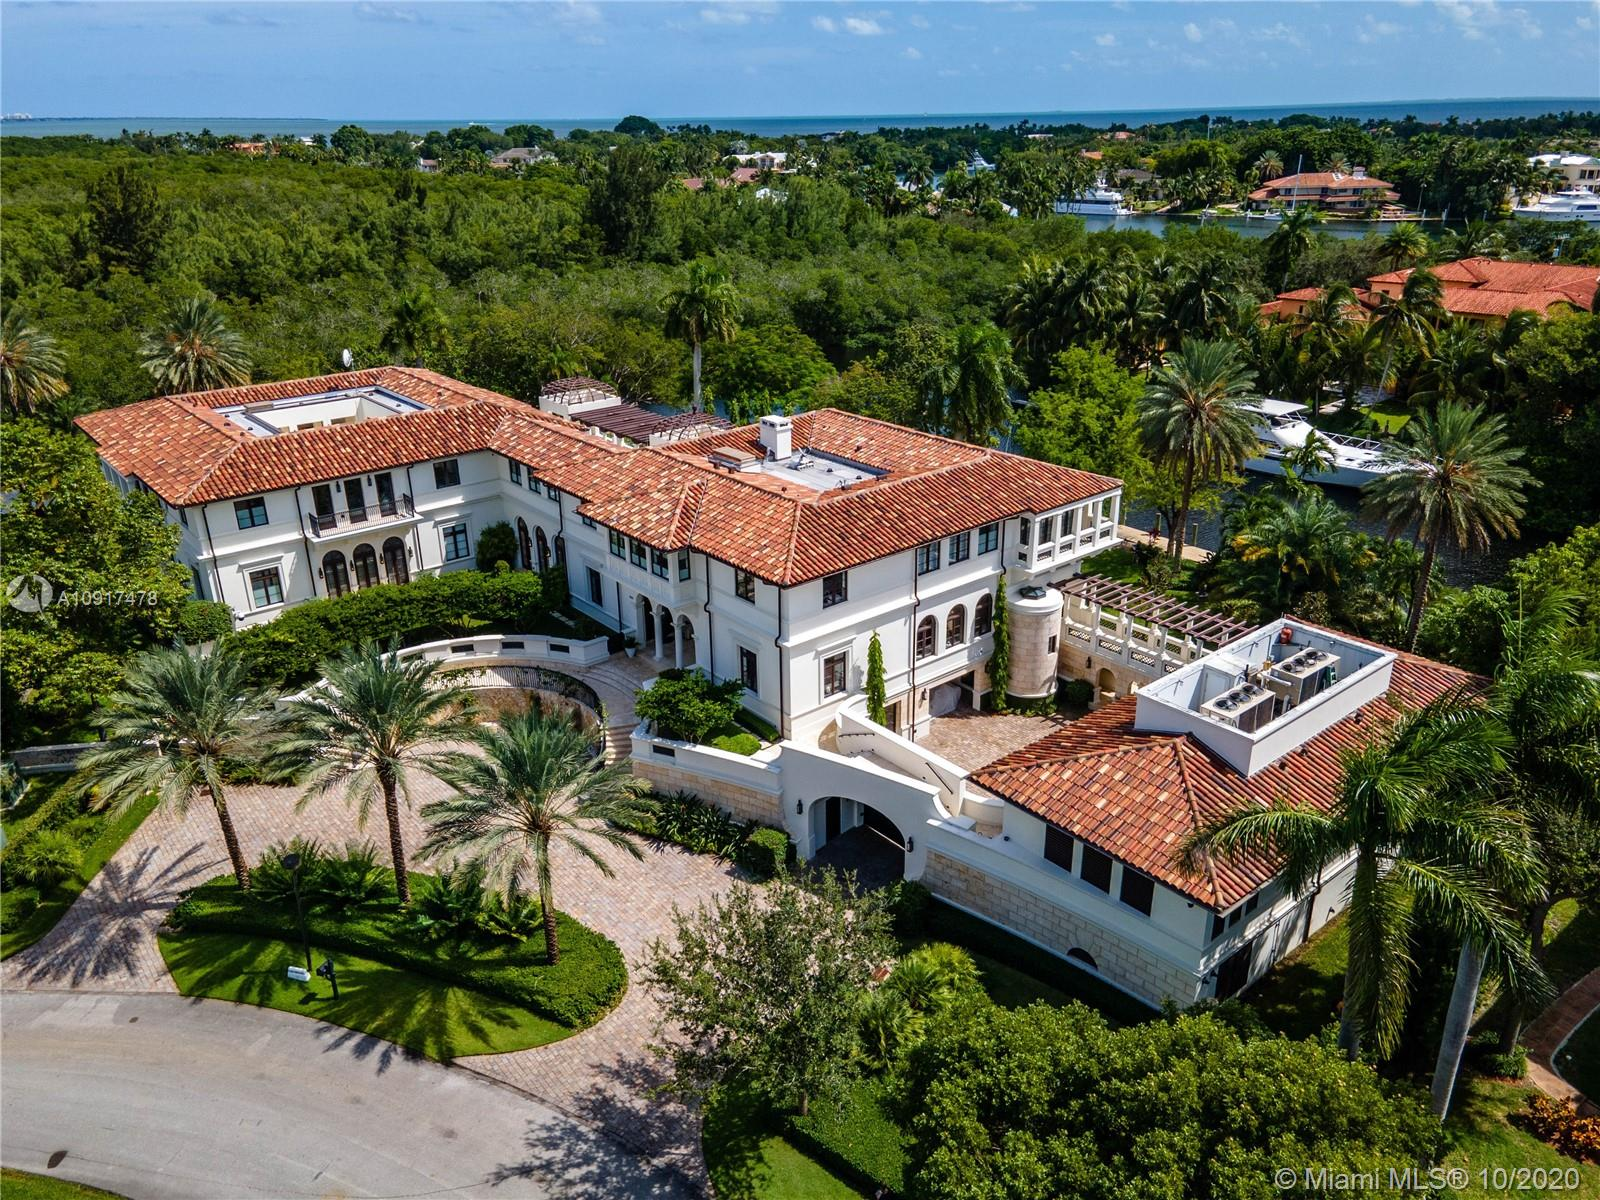 One of a kind opportunity to leave in Villa Costanera on desirable Islands of Cocoplum & Coral Gables waterway. This Amalfi coast inspired masterpiece offers 20,546 sq living space & sits on 1.3 acres corner lot with 480' water frontage & dock with ocean access, 12 bedrooms, 13 full bathrooms, 2 powder rooms, commercial elevator, custom crafted italian kitchen + butler's pantry, huge master suite with his/her bath, expansive terraces, fabulous views of garden and waterway, 2 kitchens, wine cellar, separate guest/staff quarters, outdoor entertainment area + summer kitchen, covered terraces, heated pool & so much more. Unique architecture by renowned architect Rafael Portoundo allows natural light to radiate throughout every room. Will exceed your expectations!